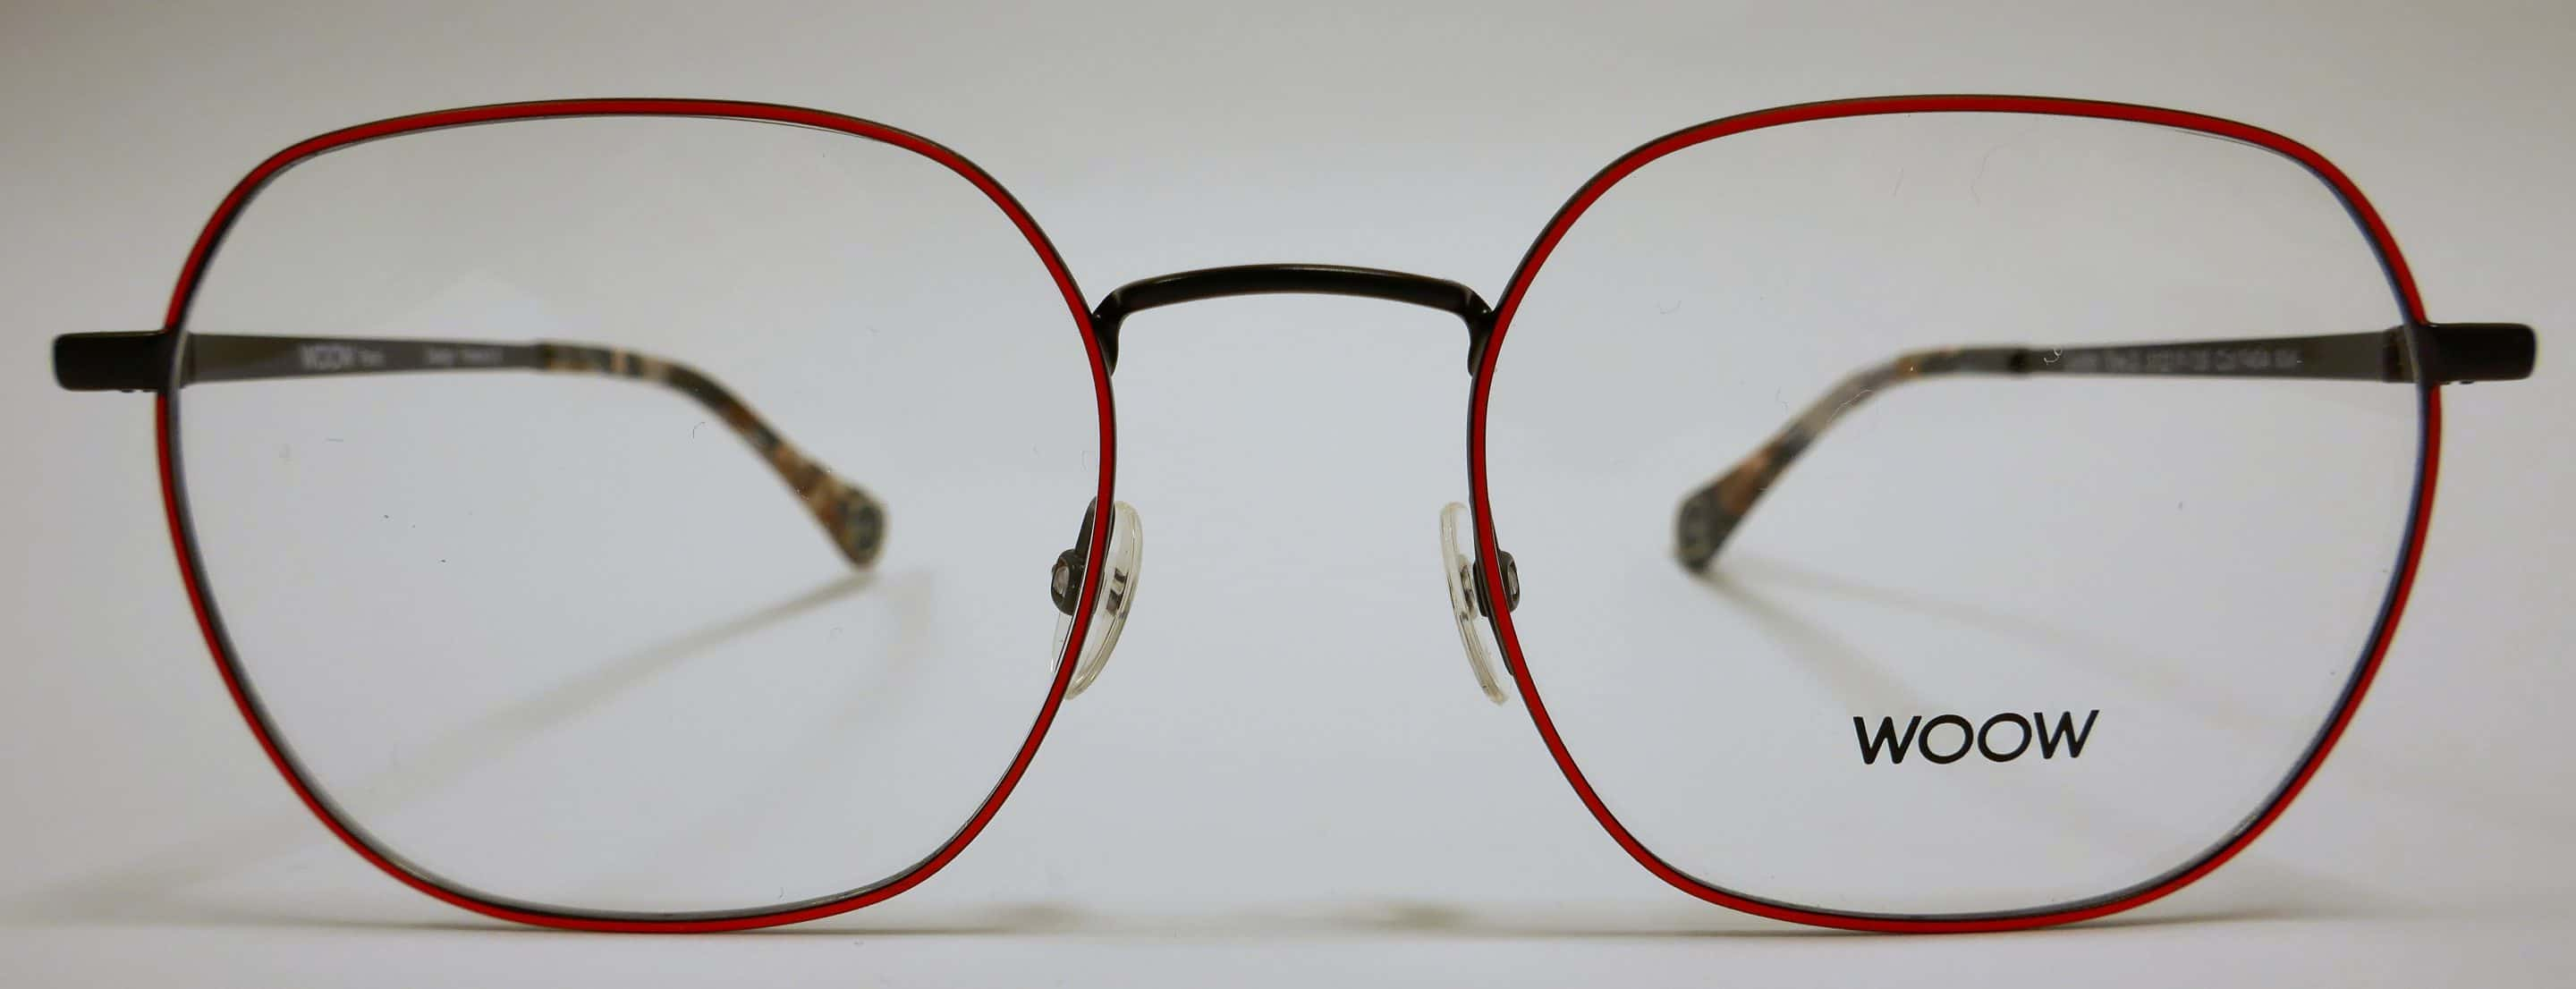 lunettes woow adultes fines rouges solesmes